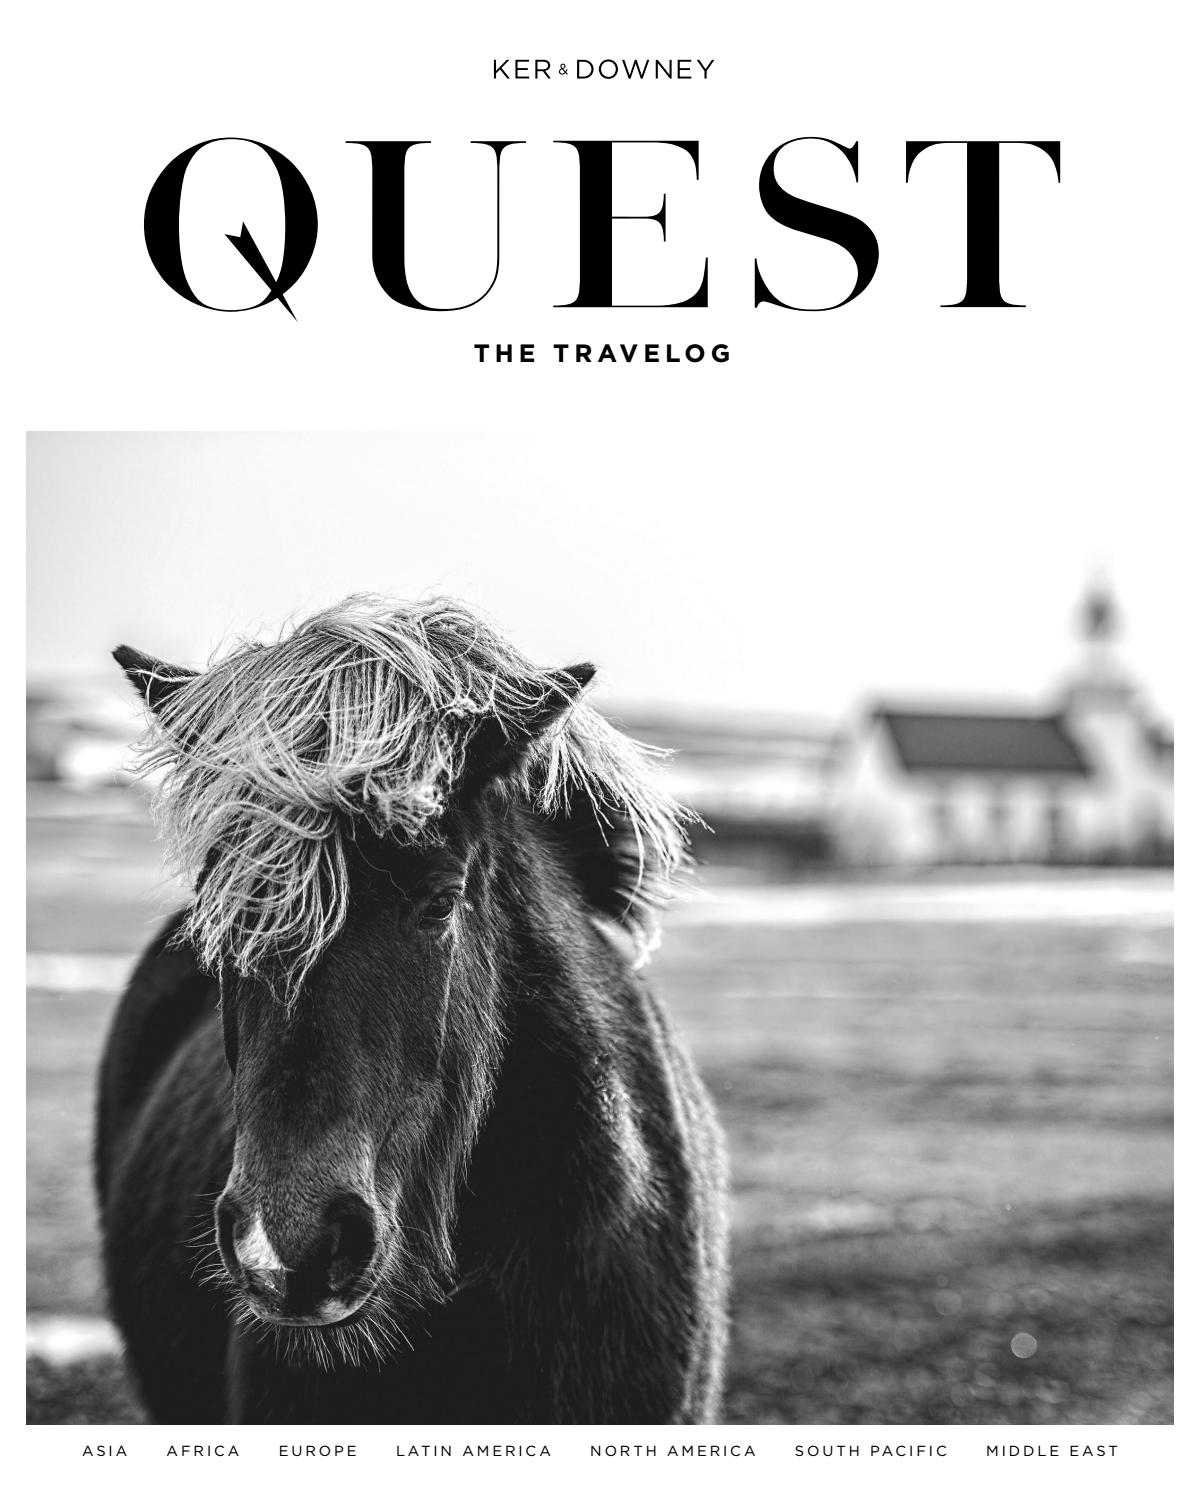 QUEST Magazine The Travelog Spring 2019 by Ker & Downey - issuu